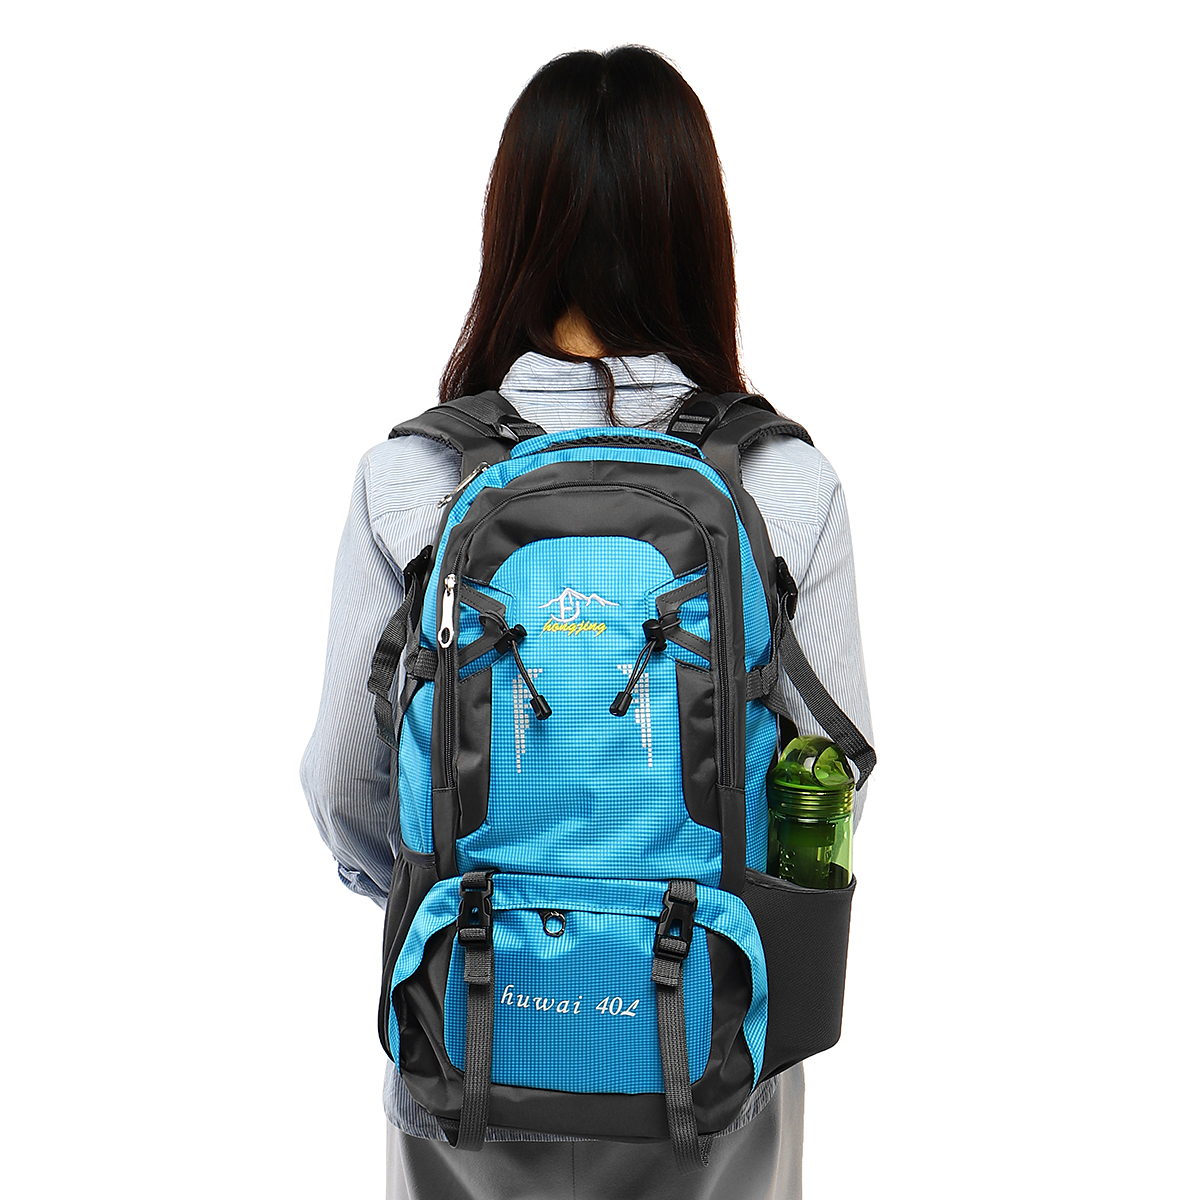 40L Unisex Nylon Outdoor Backpack Hiking Camping Waterproof Travel Bag